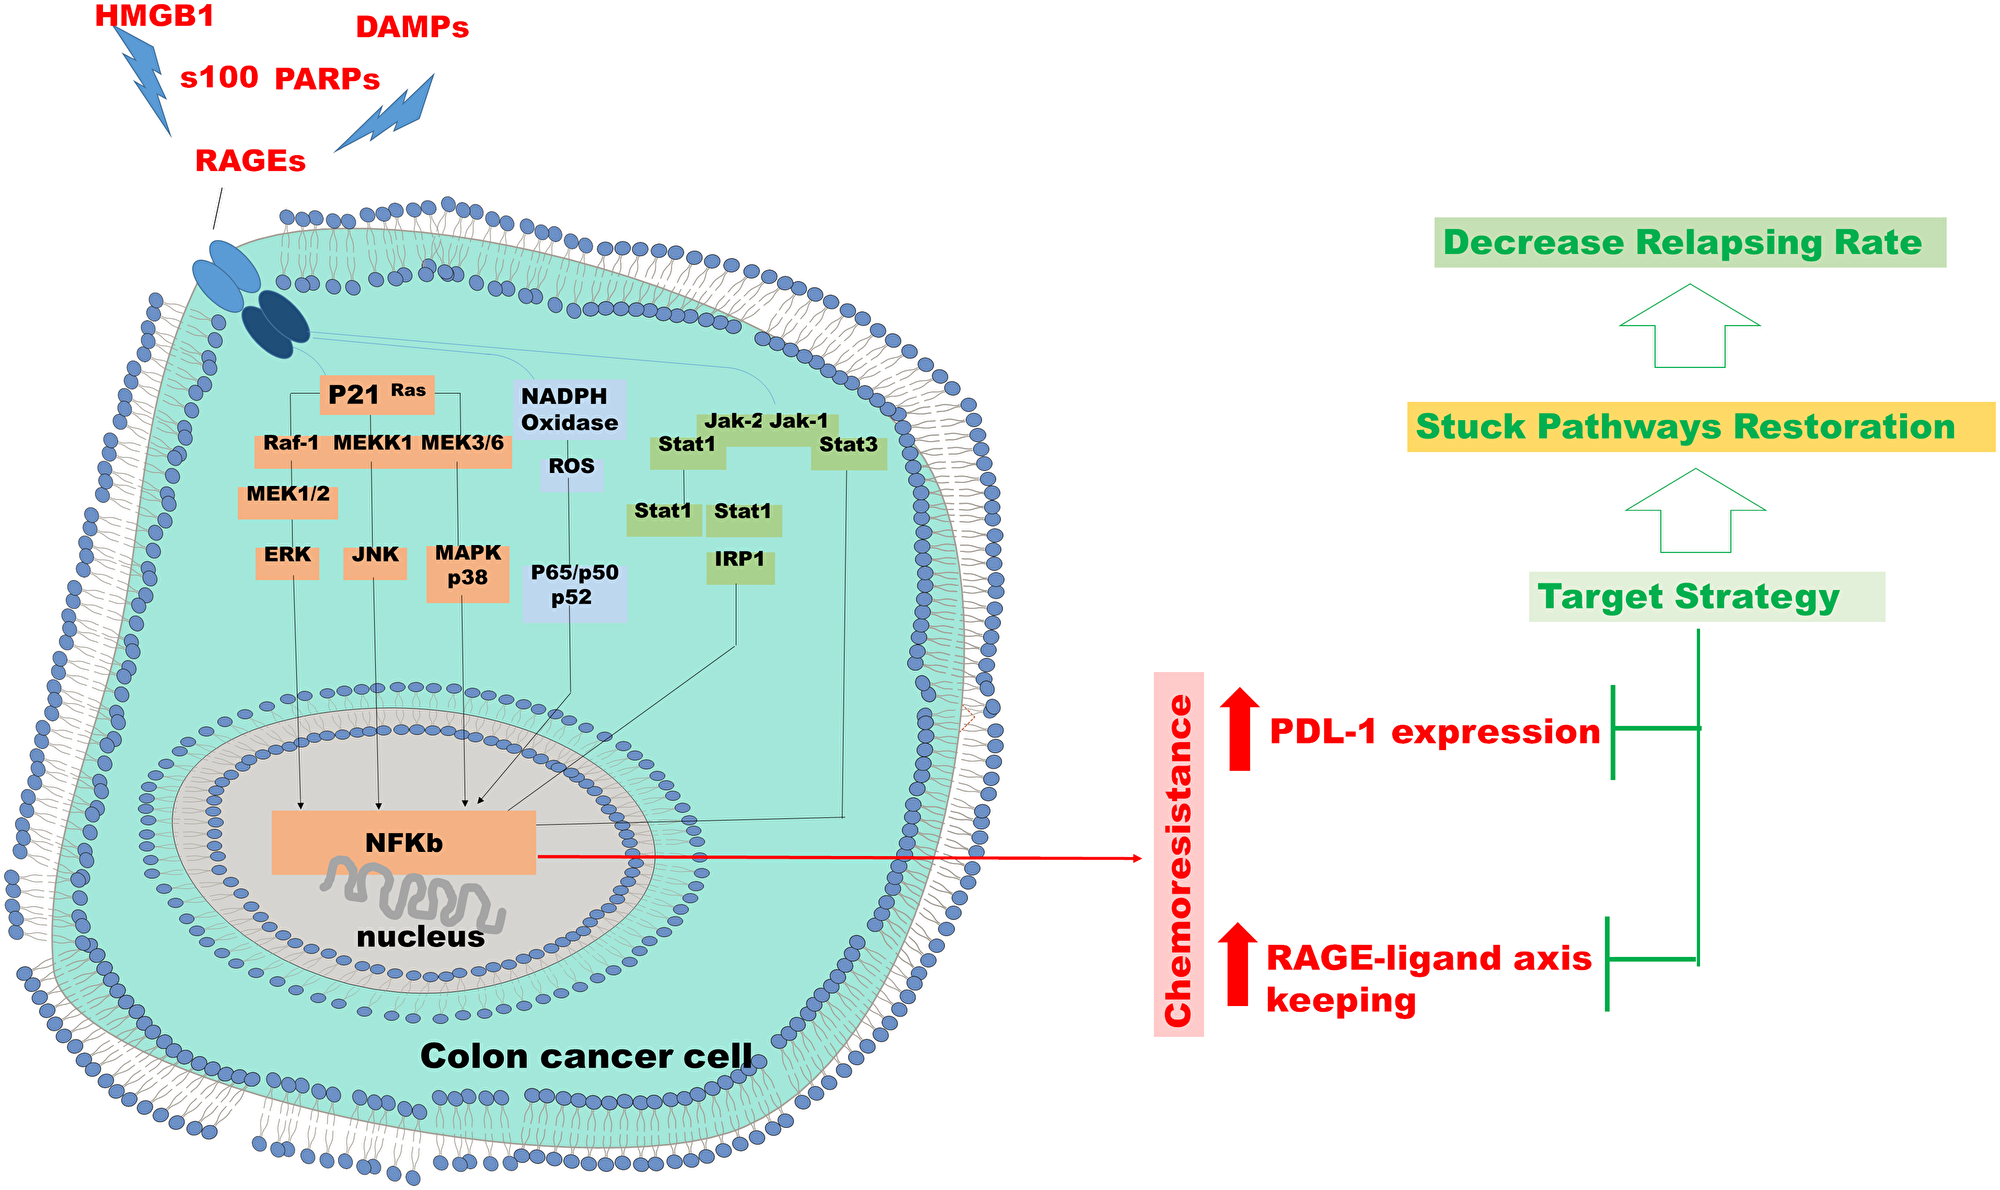 Chemo resistance in colon cancer cell.